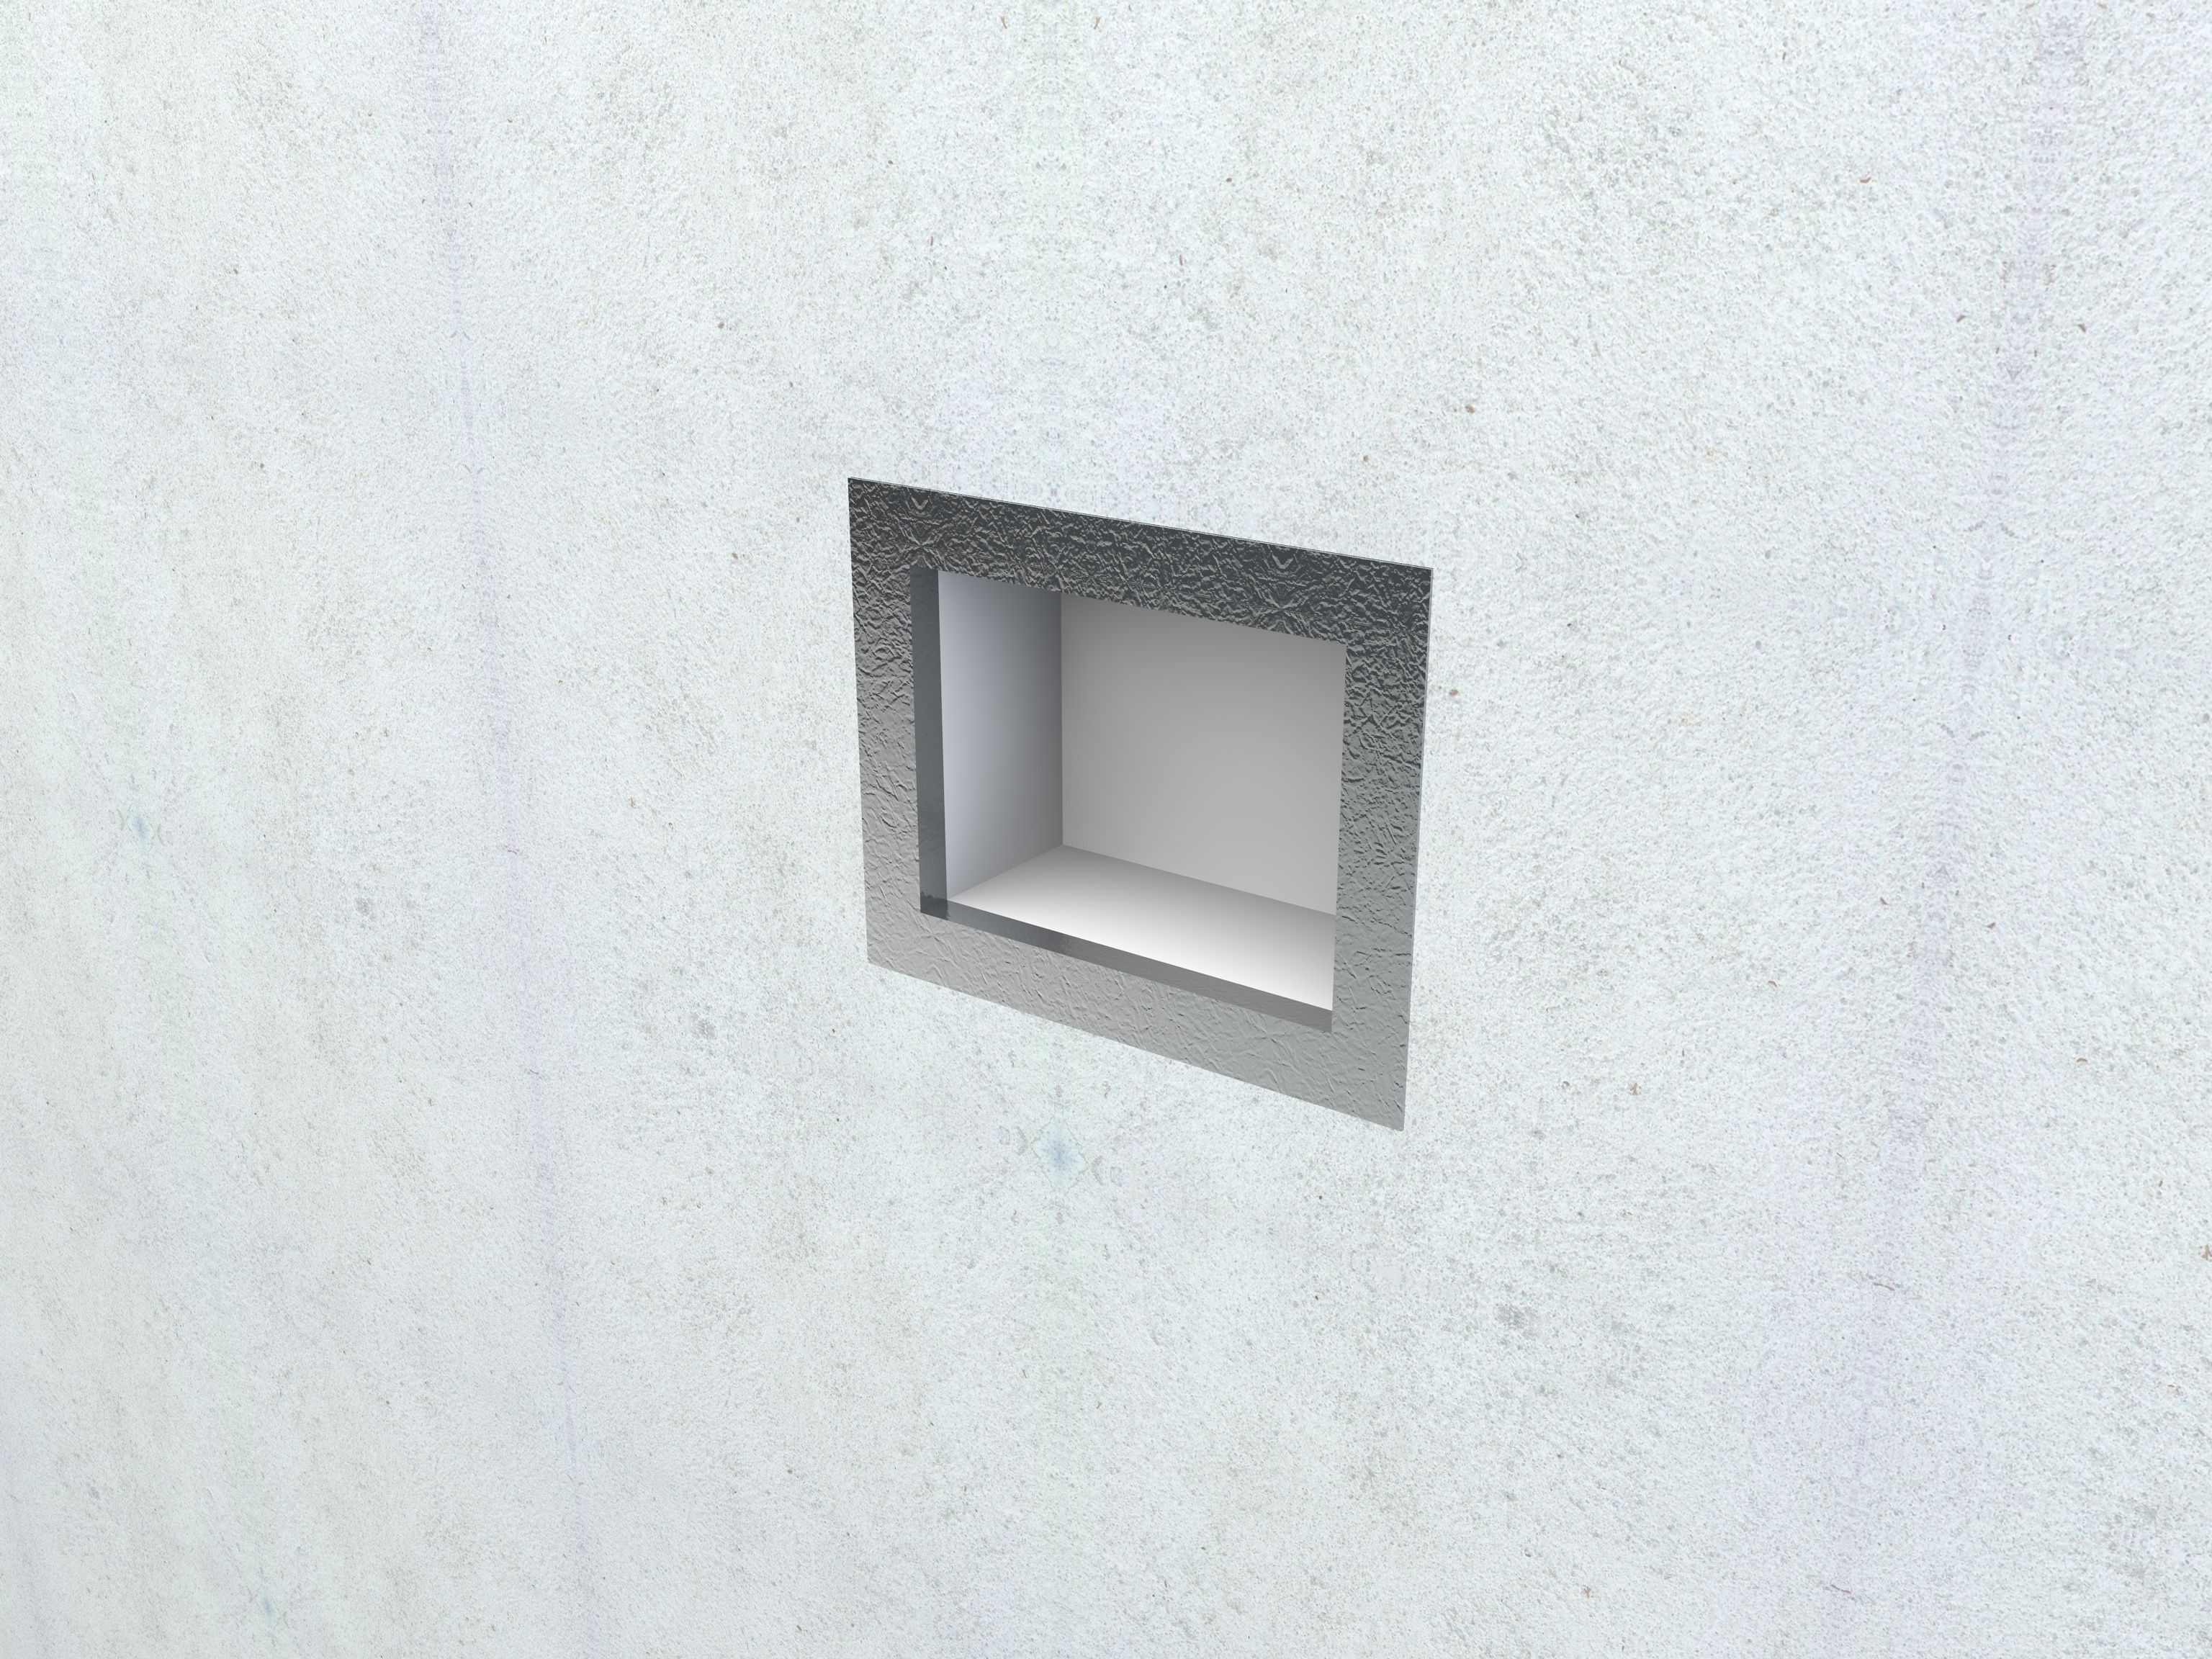 AF ELECTRIC BOX is a calcium silicate box designed to grant EI 120 to the standard electric boxes inserted in flexible and rigid walls.